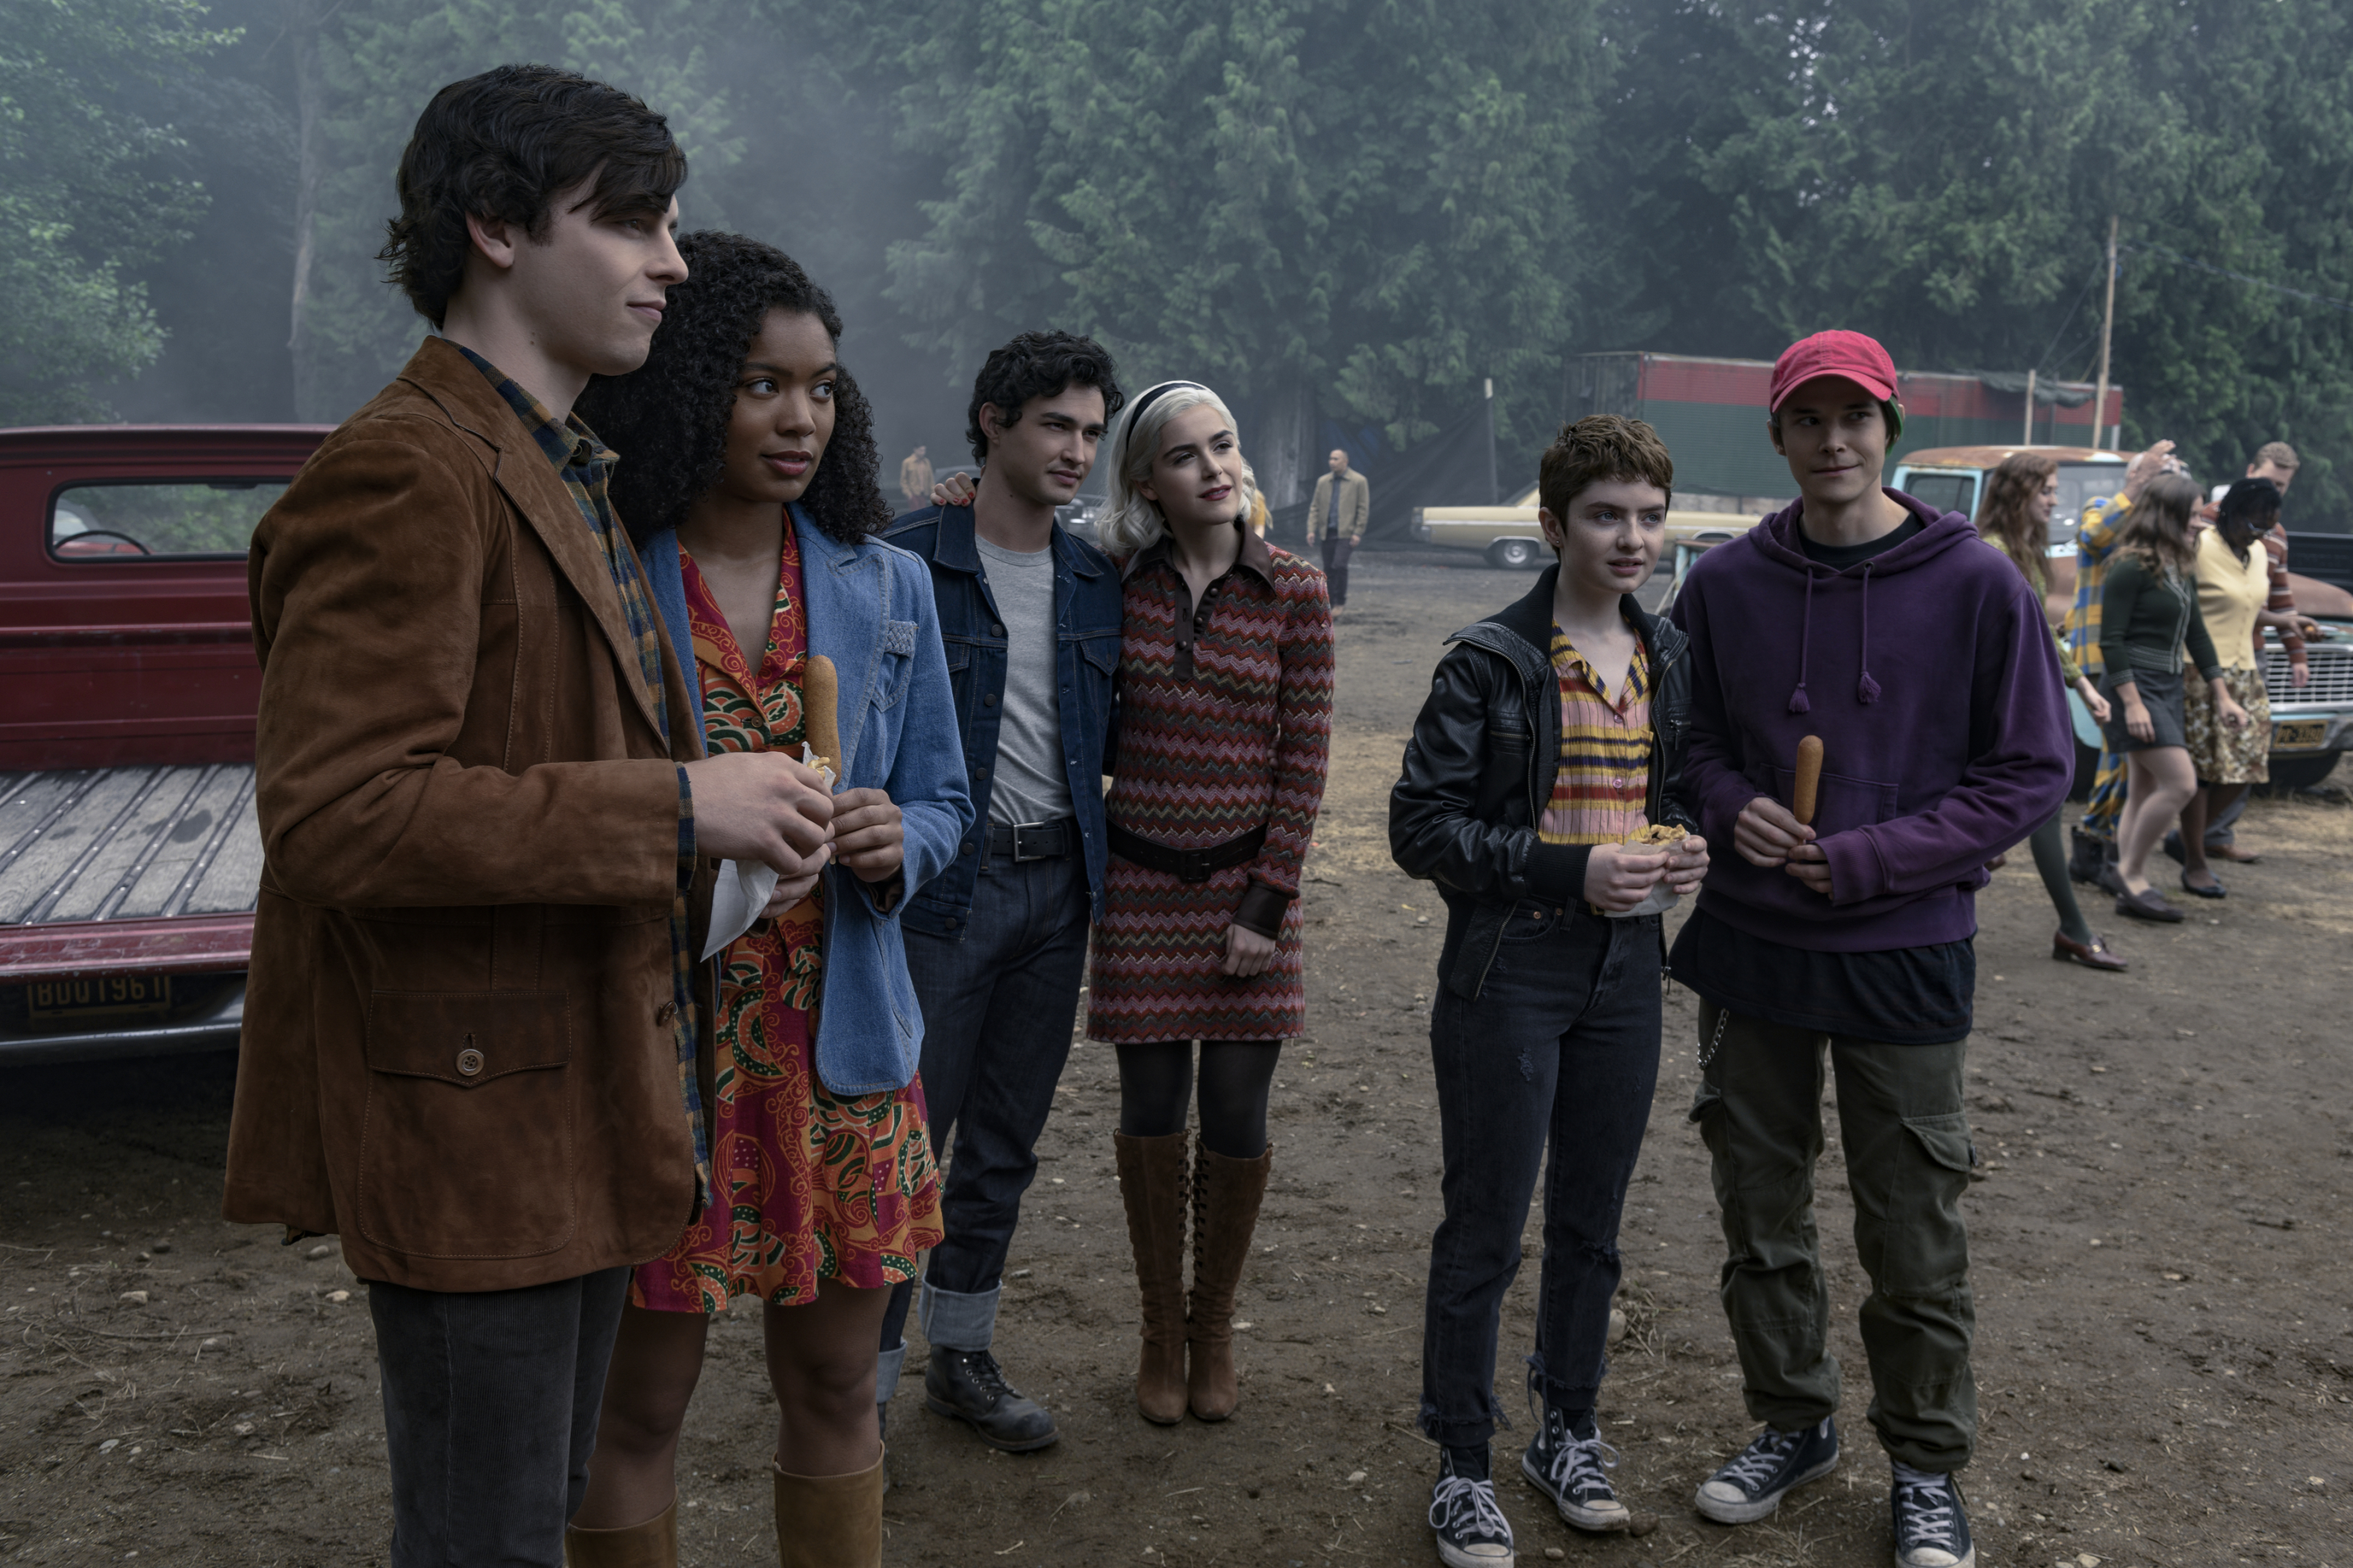 Chilling Adventures of Sabrina: Lucie Guest shares more details about Circe